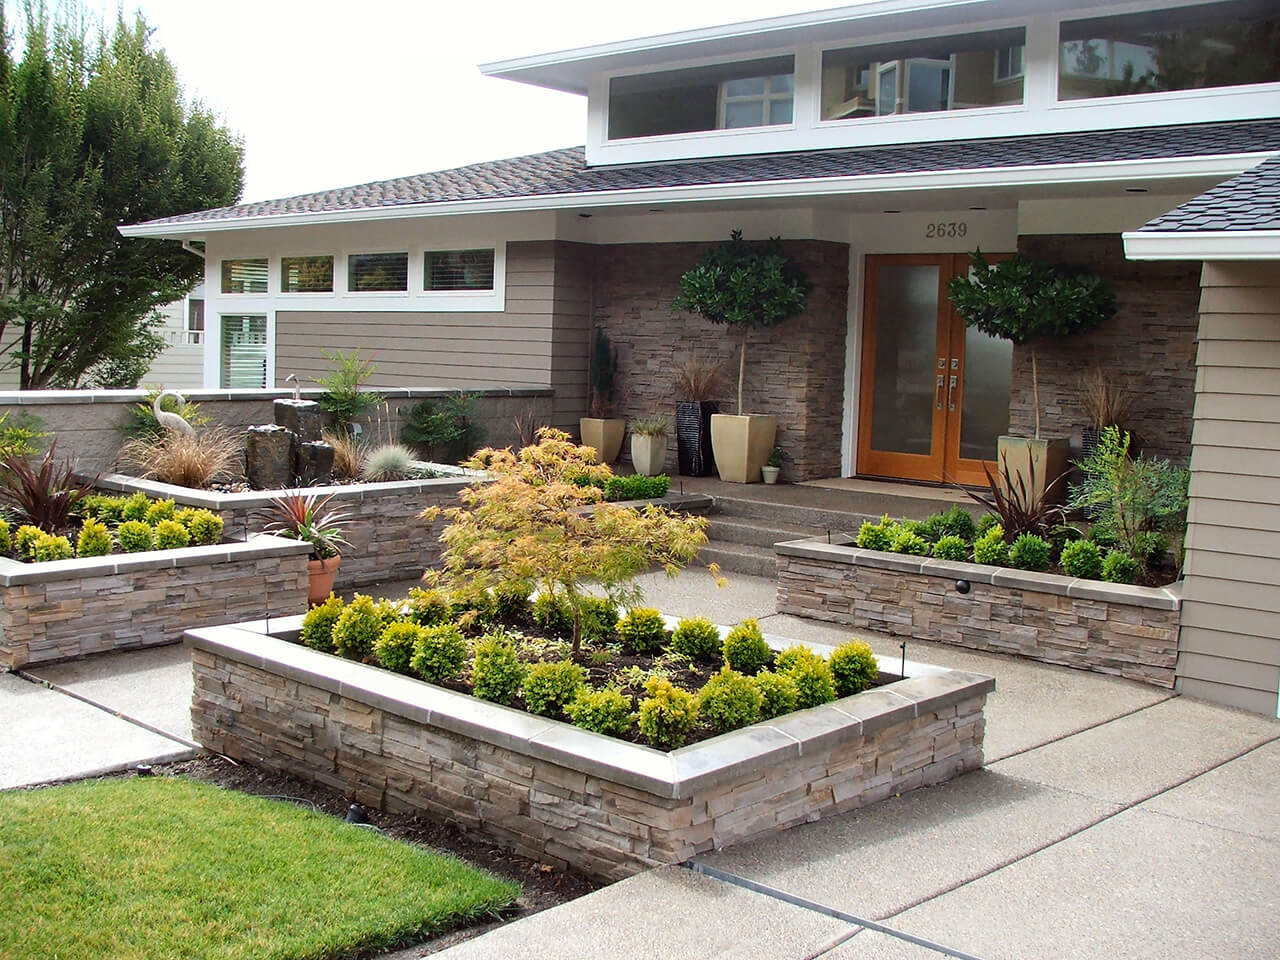 20 brilliant front garden landscaping ideas style motivation for Yard landscaping ideas